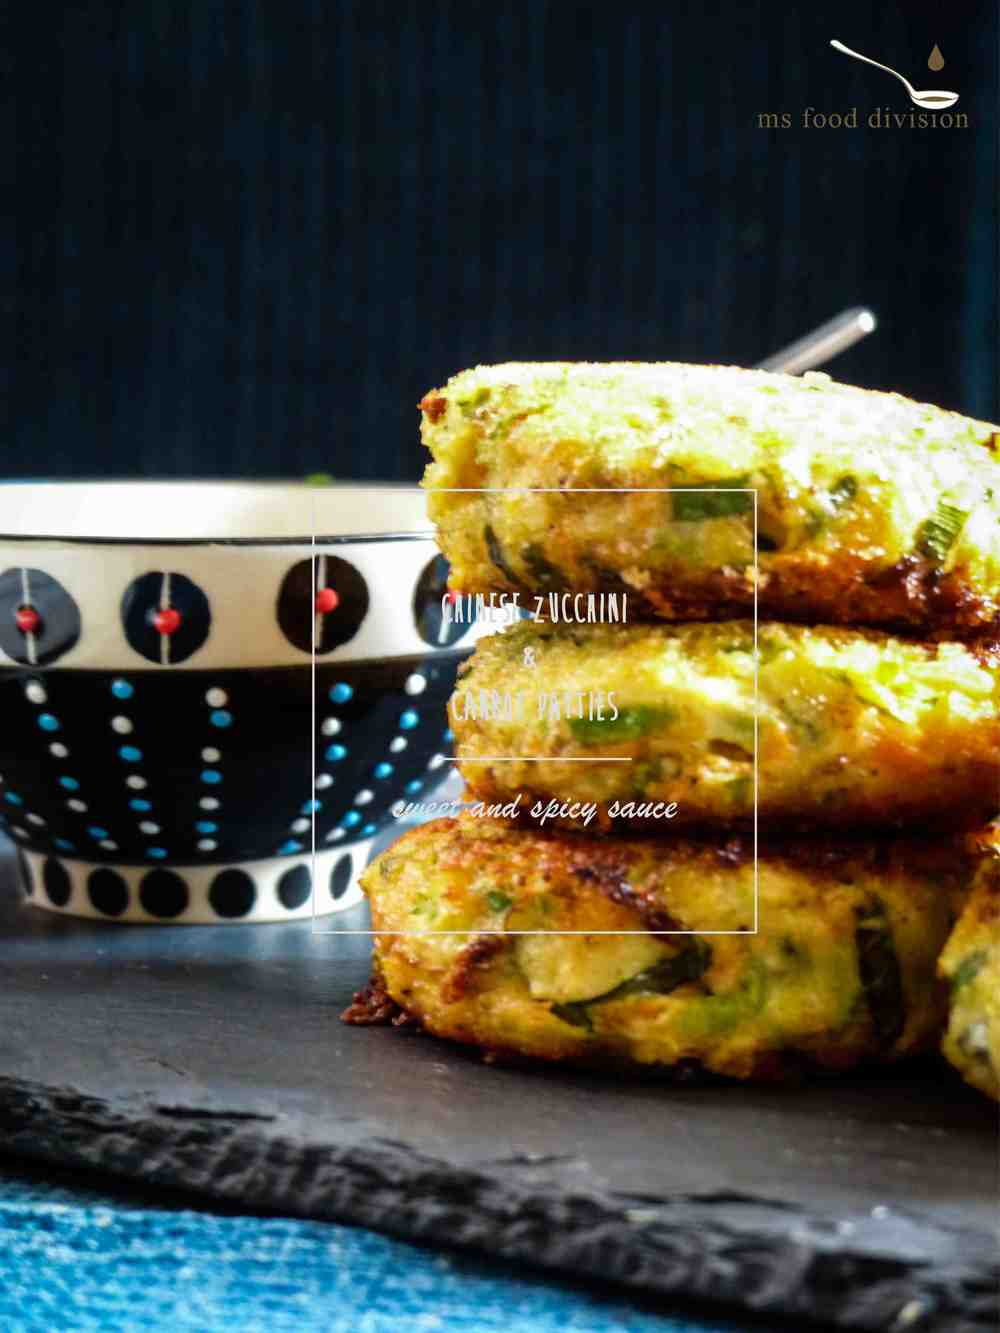 The taste and texture of these patties are magnificent.  Anyone who doesn't like veggies would somehow end up loving these patties.